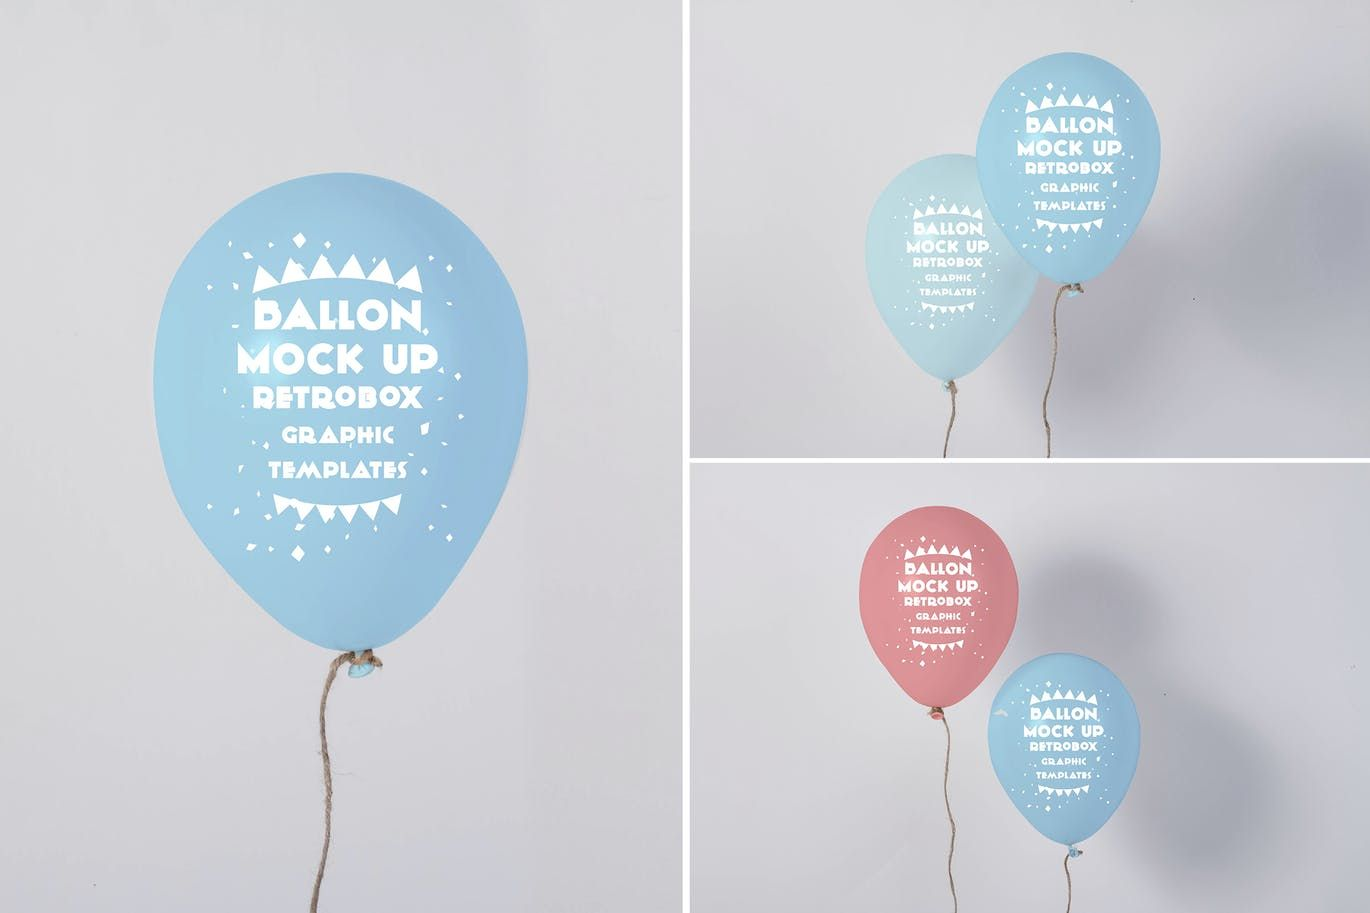 Balloon Mock Up By Retrobox On Envato Elements Balloons Psd Template Free Mockup